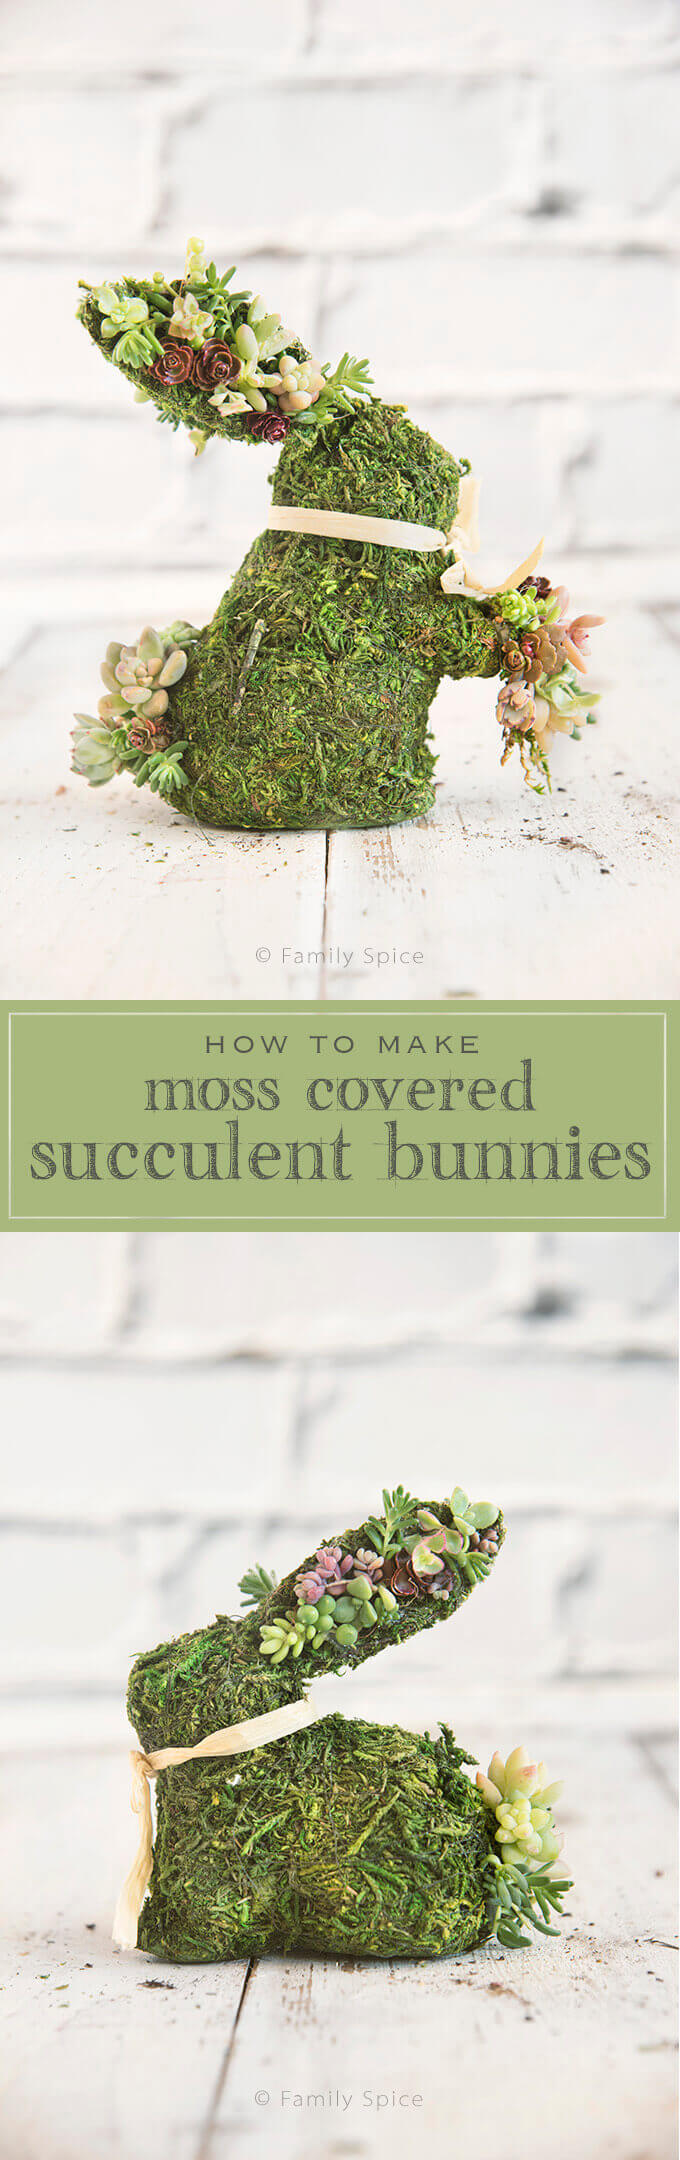 Succulents are hearty plants that require little water, making them the perfect crafting accessory for these Moss Covered Succulent Bunnies -- a beautiful way to celebrate spring!  by FamilySpice.com